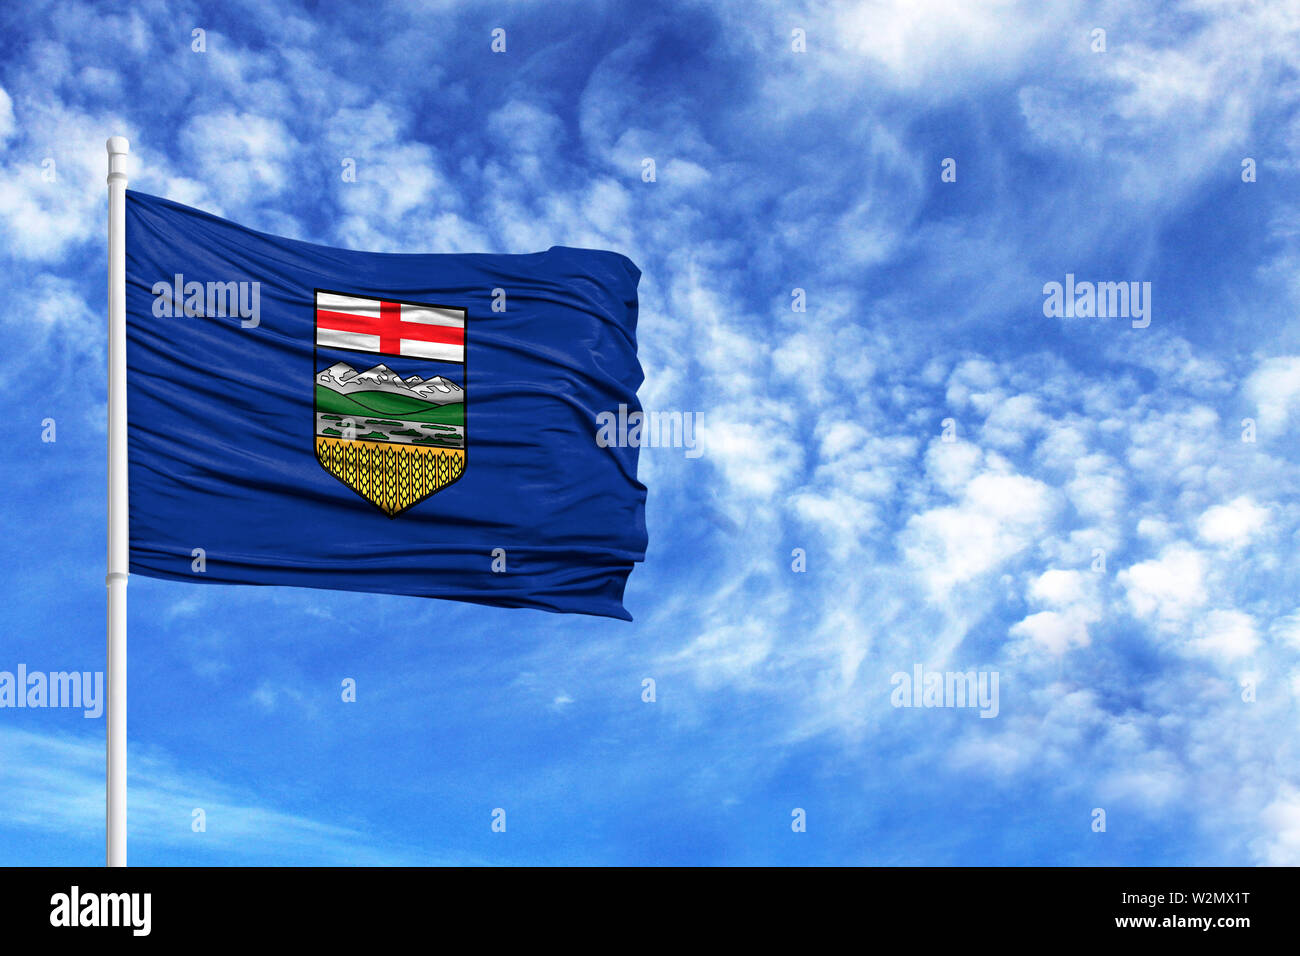 National flag of Alberta on a flagpole in front of blue sky - Stock Image